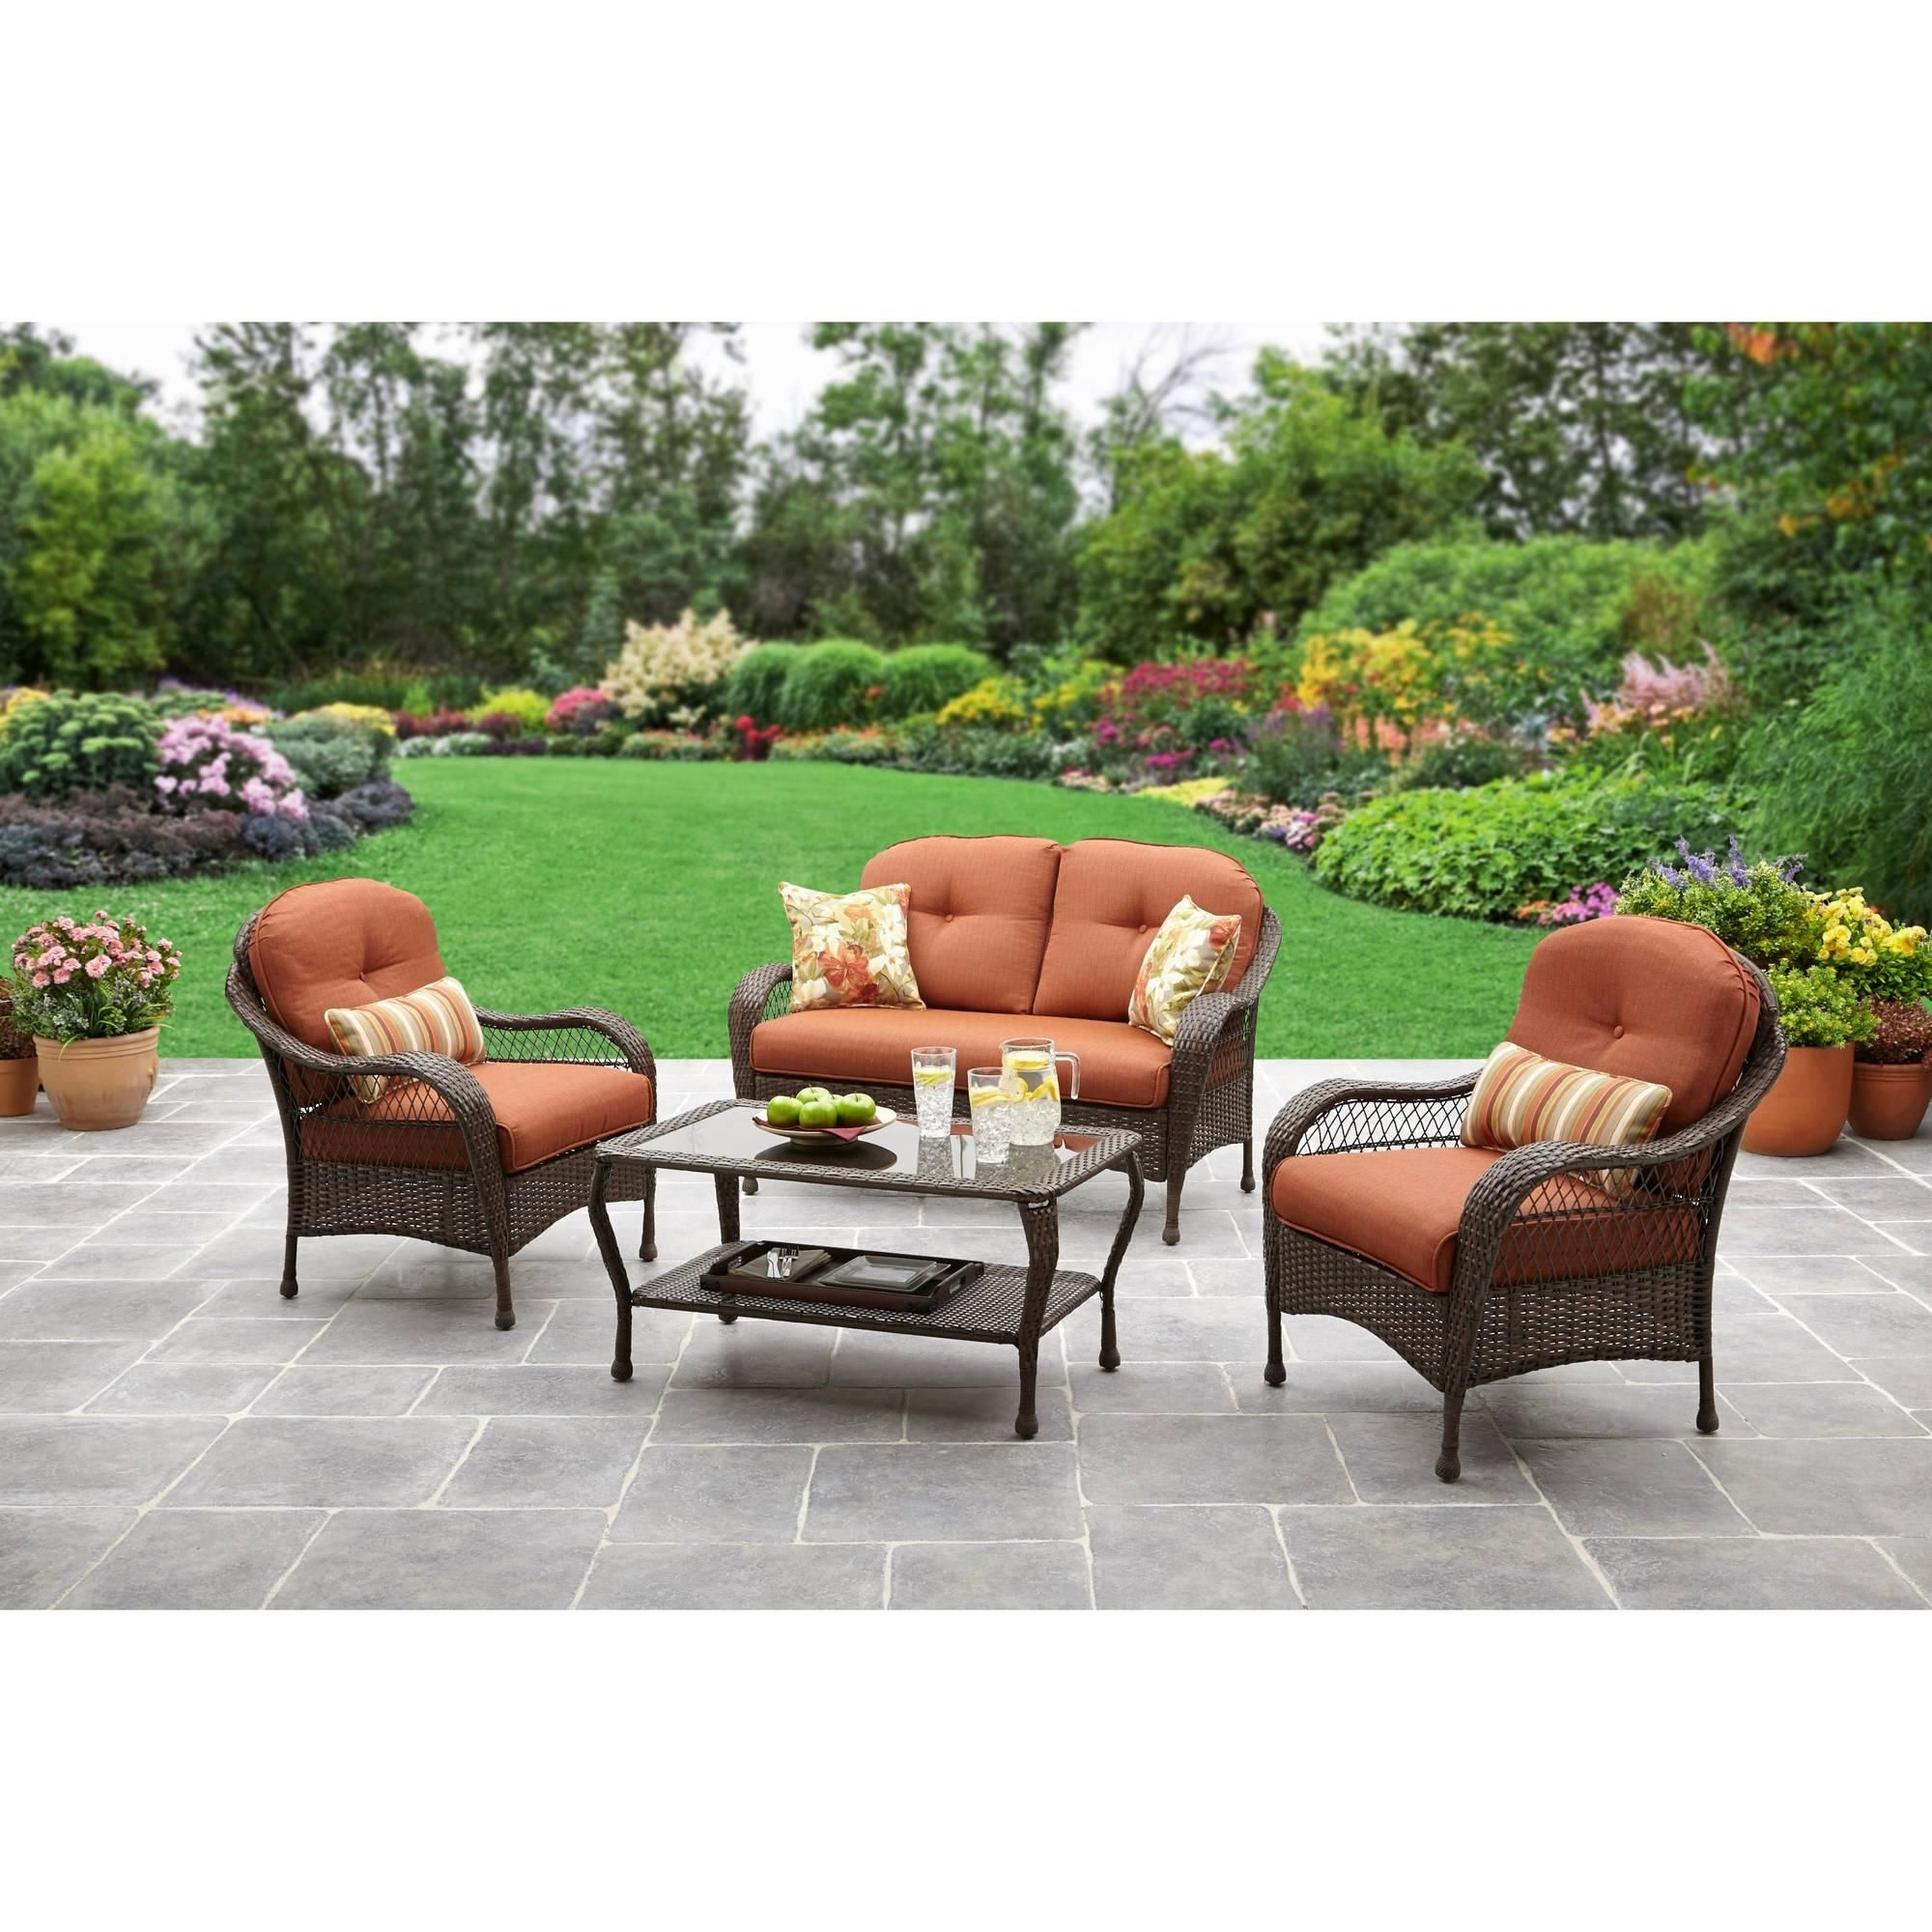 Walmart Patio Furniture Conversation Sets Inside Most Popular Replacement Cushions For Outdoor Furniture Walmart – Best Spray (View 14 of 20)